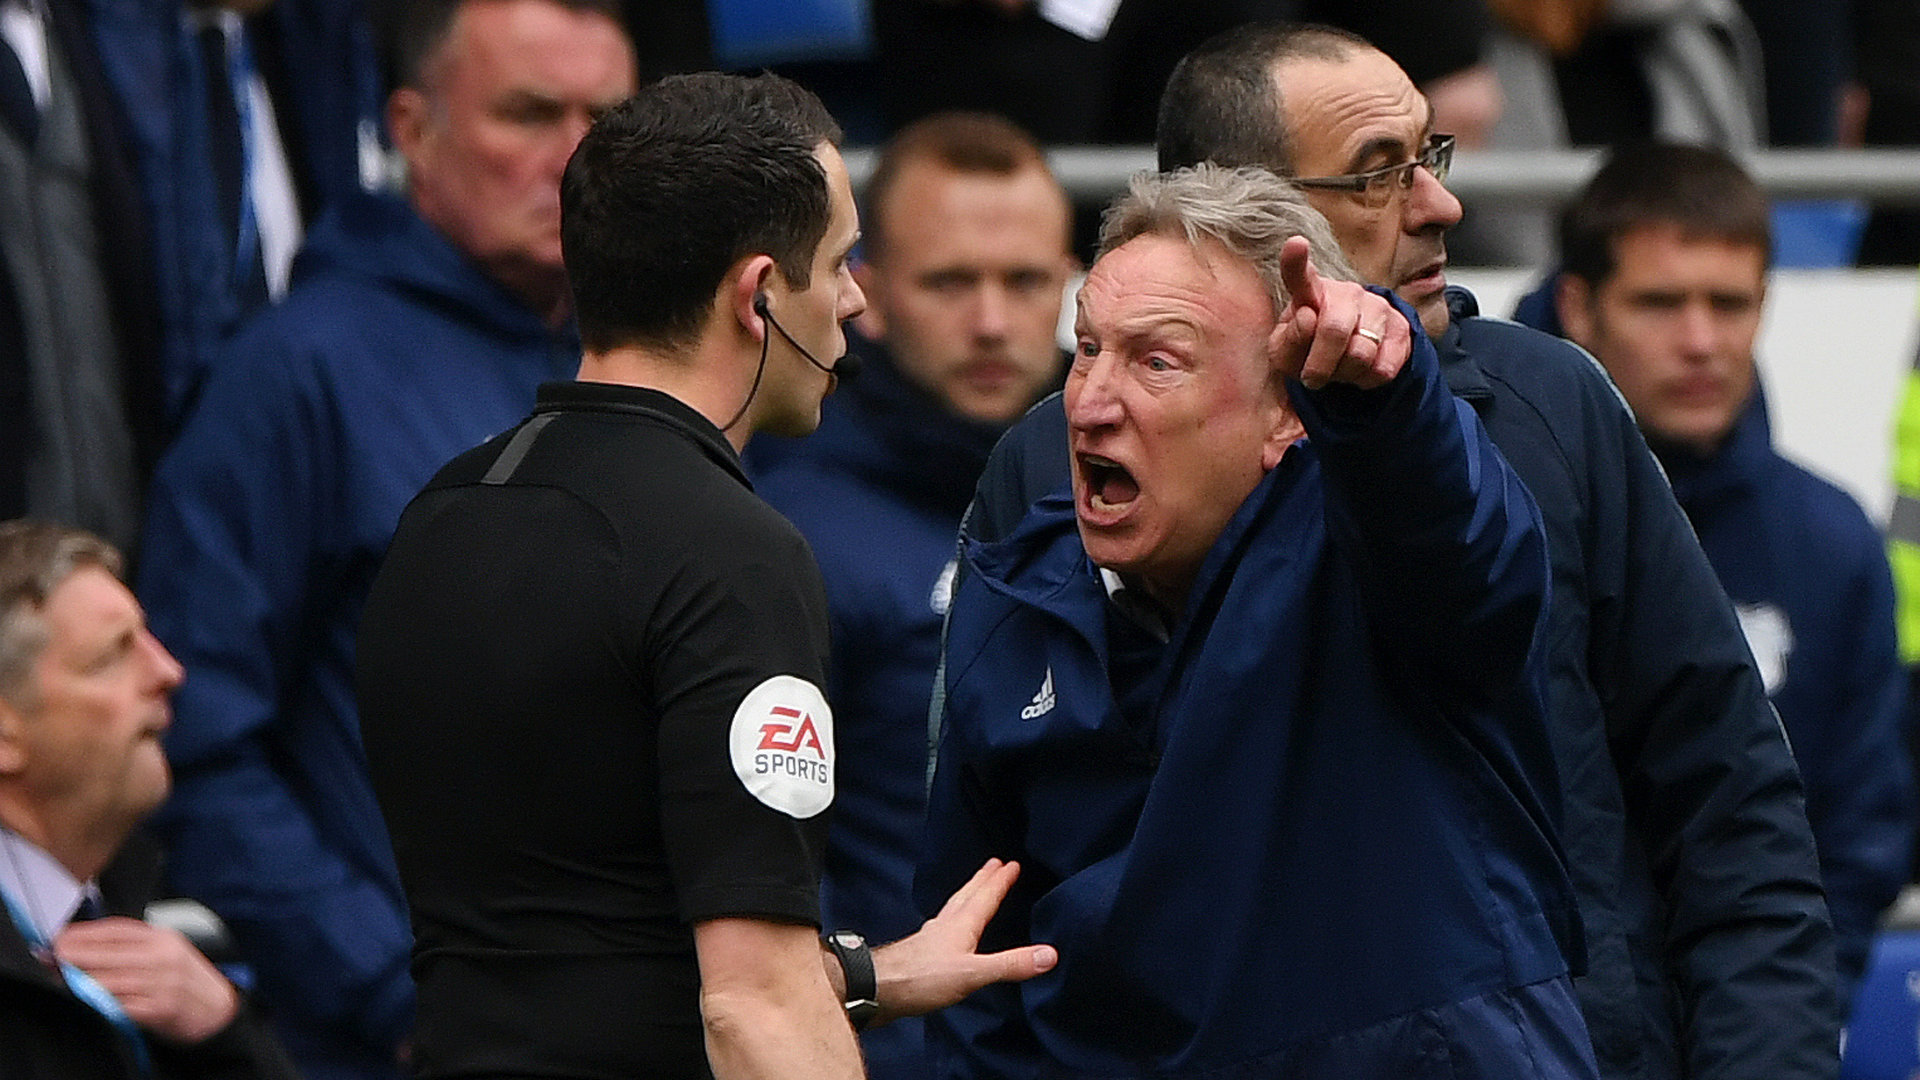 'Best league, worst officials': Warnock rages over Cardiff's controversial defeat